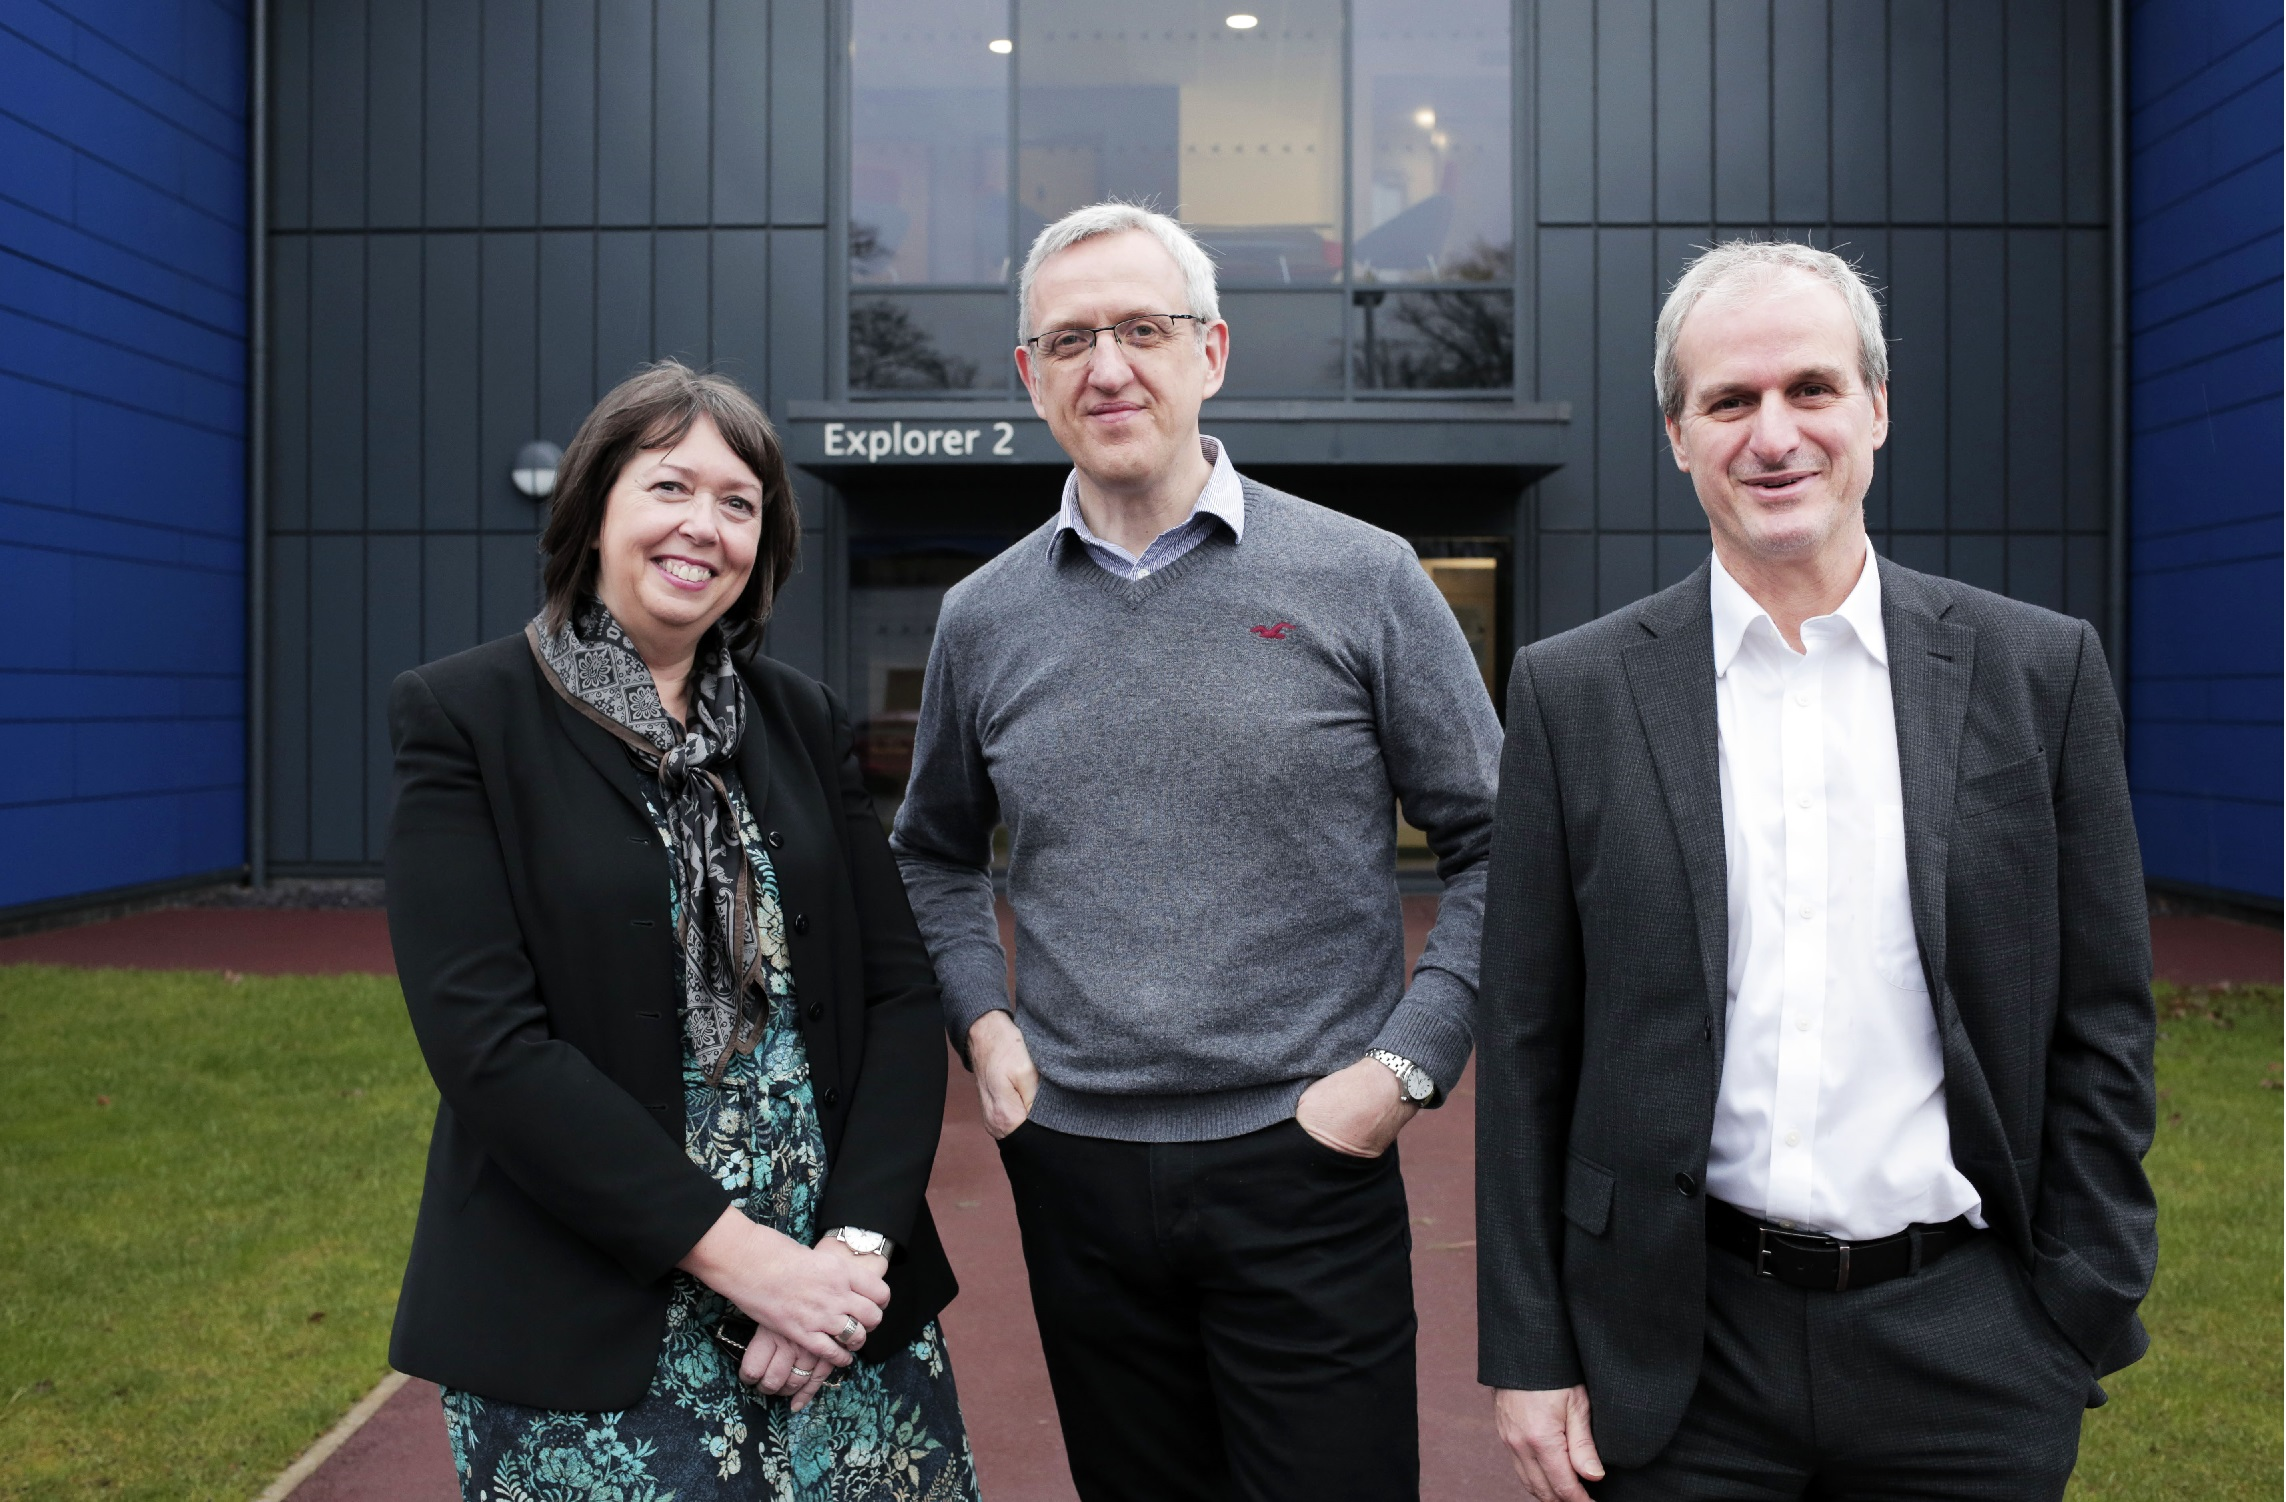 Janet Todd of Business Durham with Paul Usher and John Sherban (right) of Quorum Development Ltd at the company's new offices at NETPark near Sedgefield in County Durham. Photograph: Stuart Boulton.